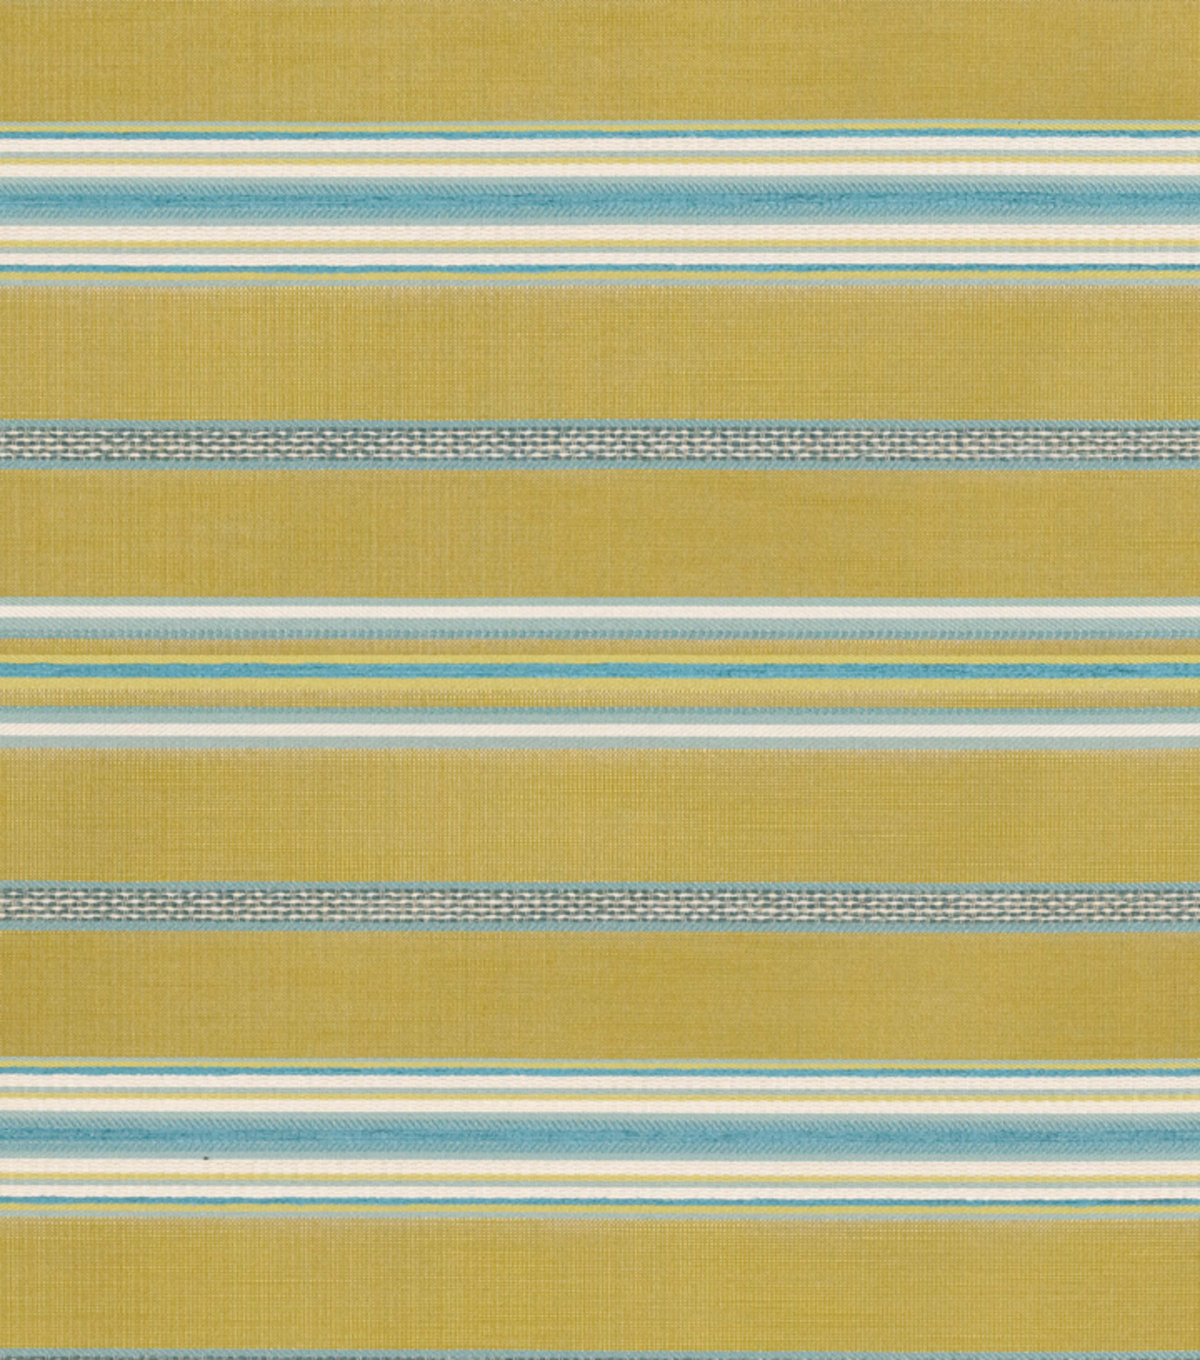 Home Decor 8\u0022x8\u0022 Fabric Swatch-Pamlico Caribbean